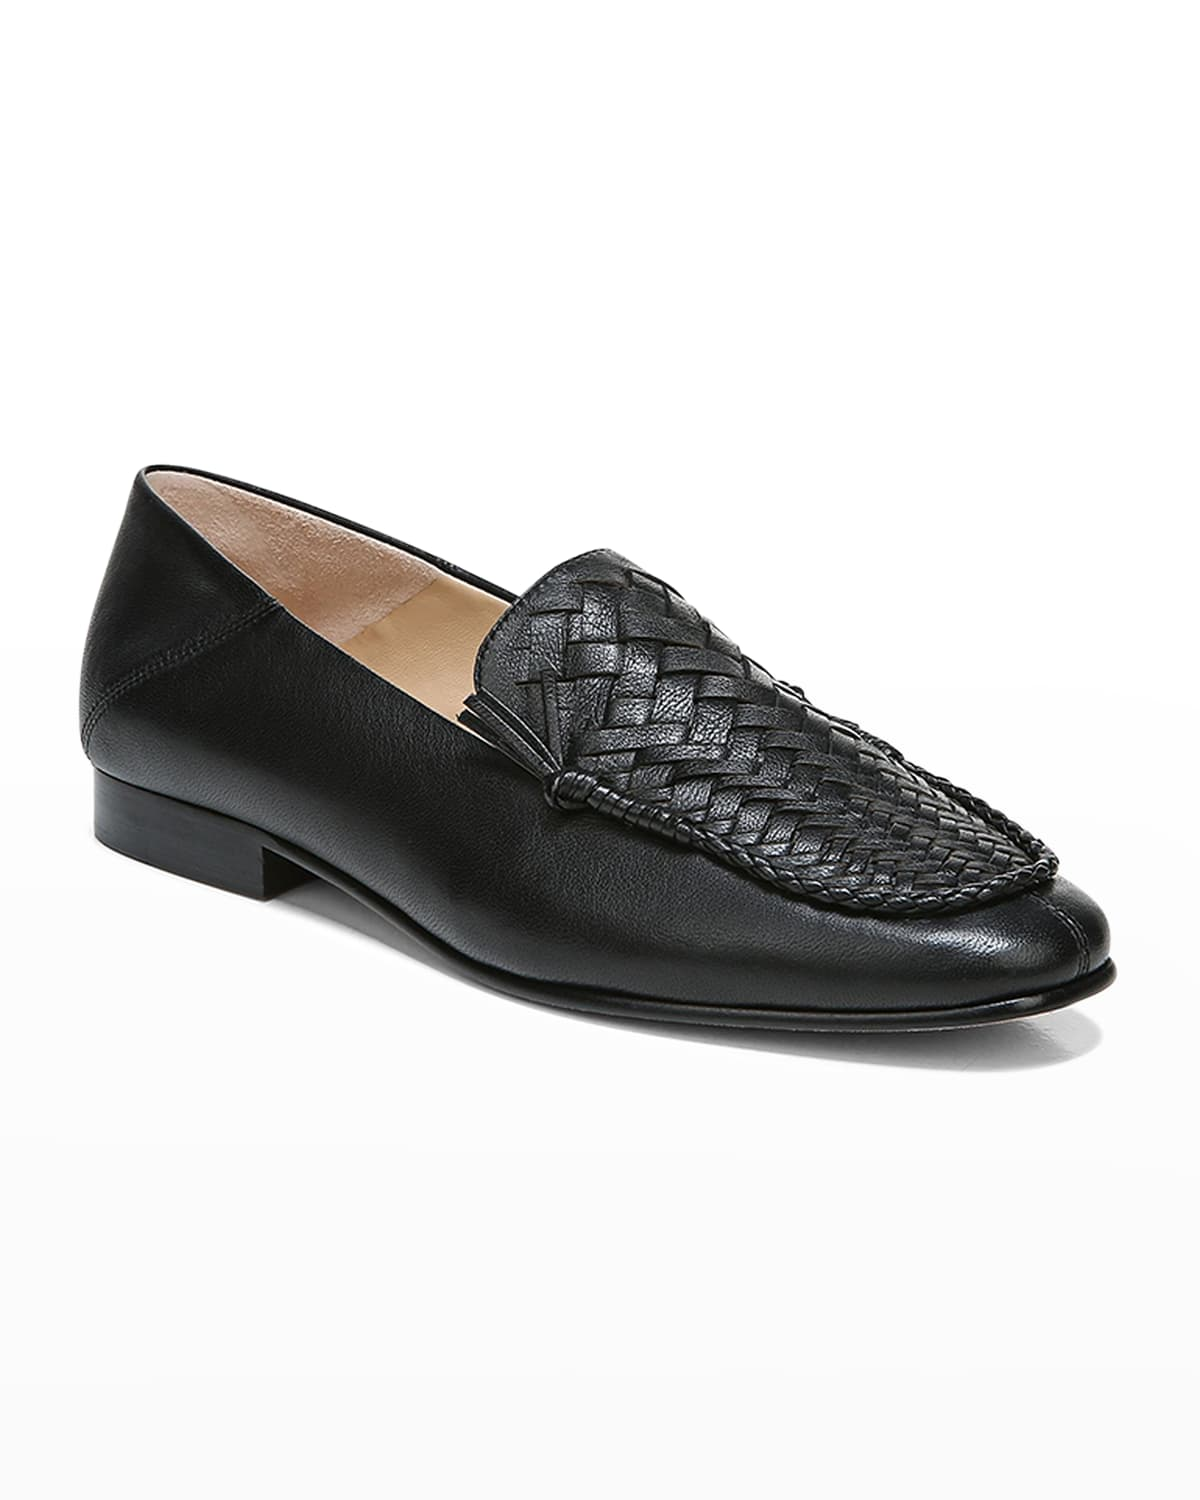 Anica Woven Leather Loafers